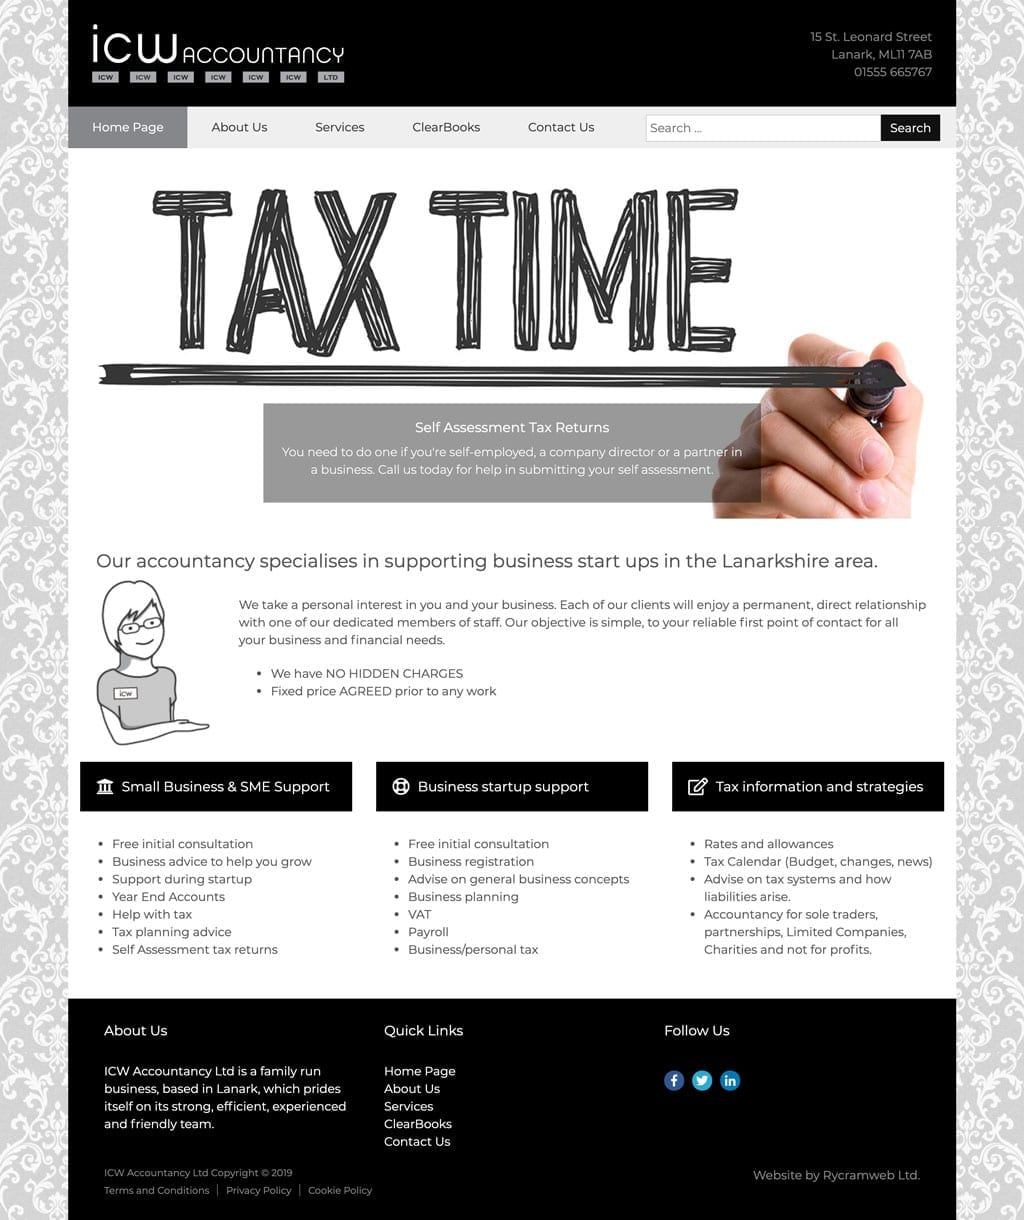 ICW Accountancy Ltd 1